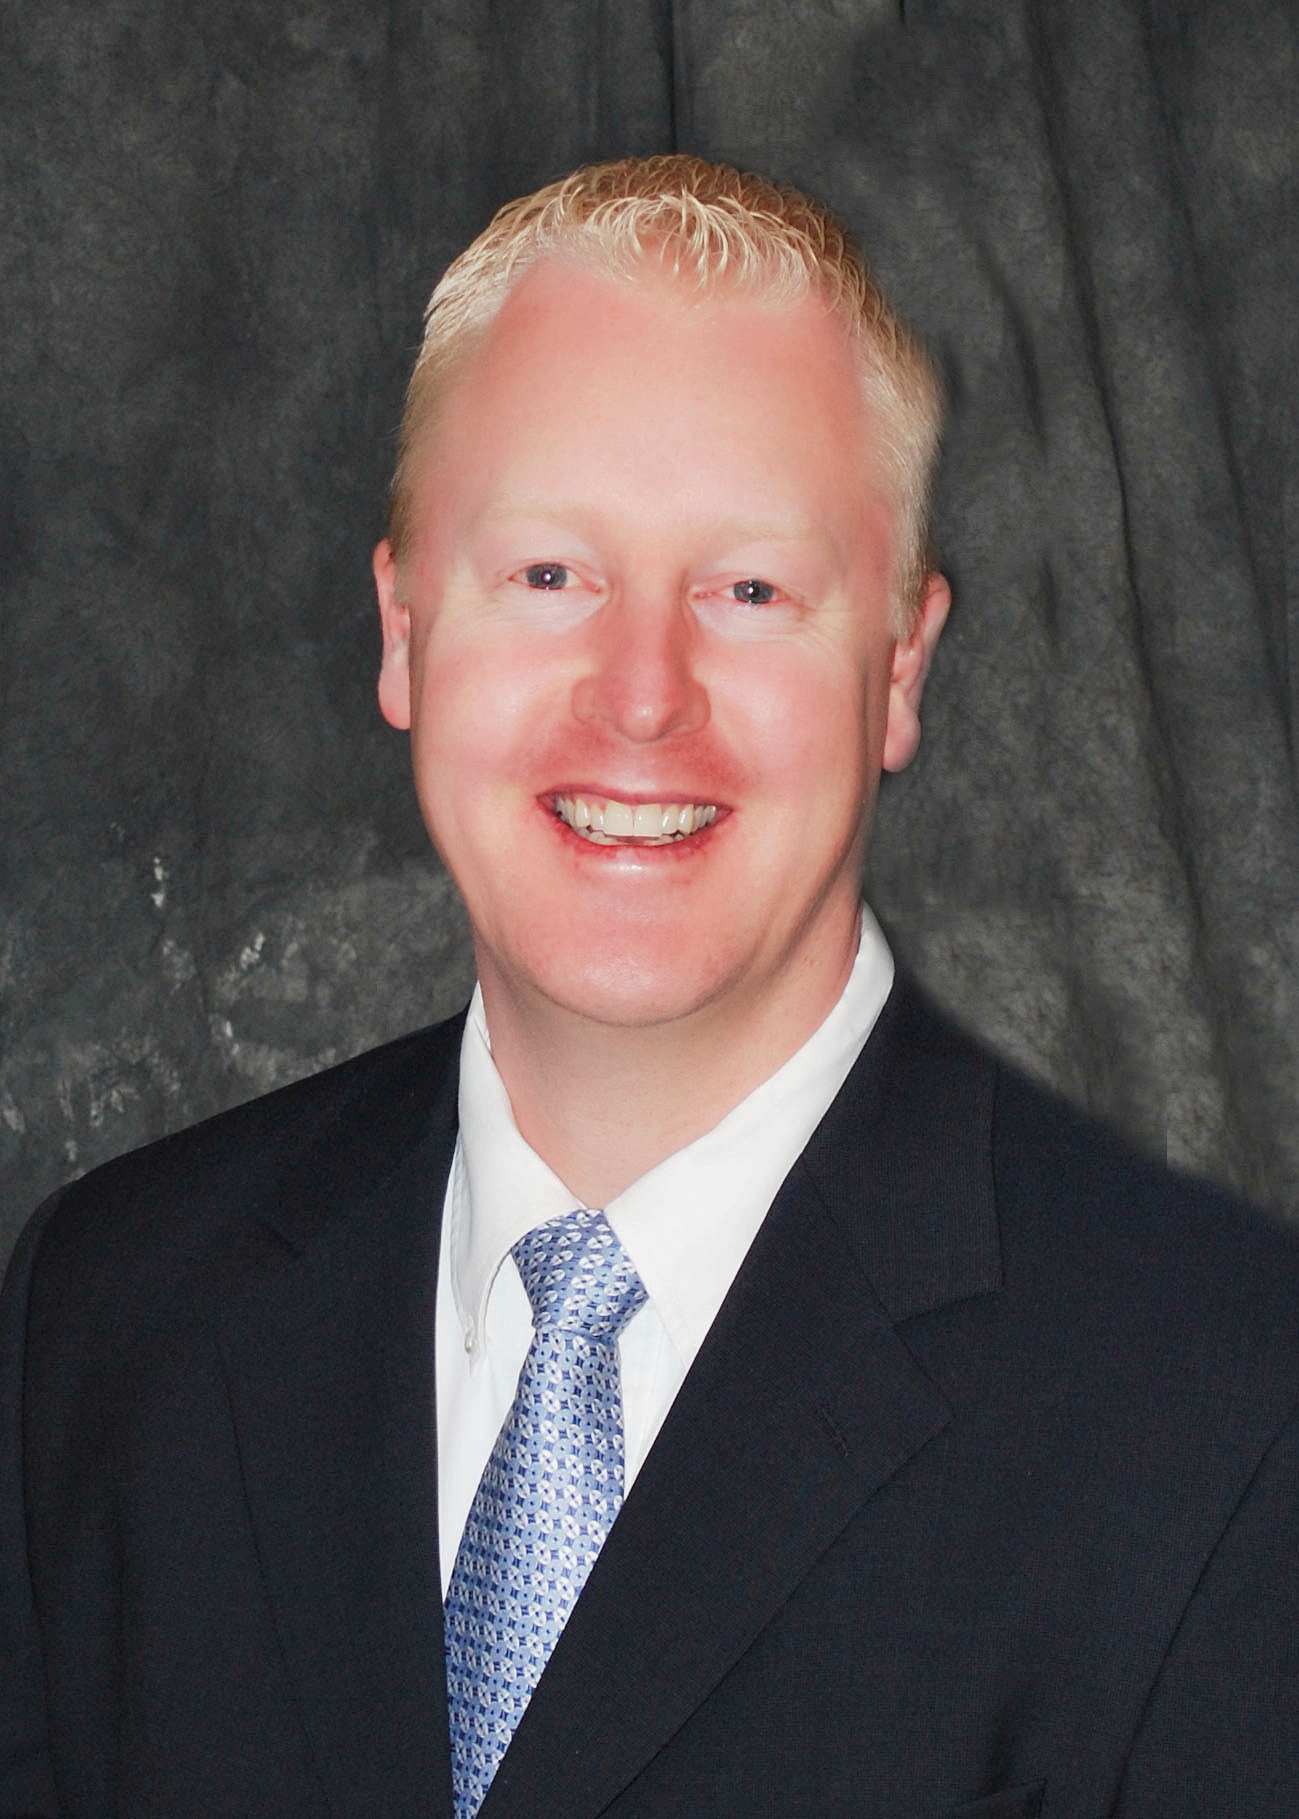 Professional Headshot Photo Of Chiropractor Dr. Steven Davis In A Black Suit With A Blue Tie